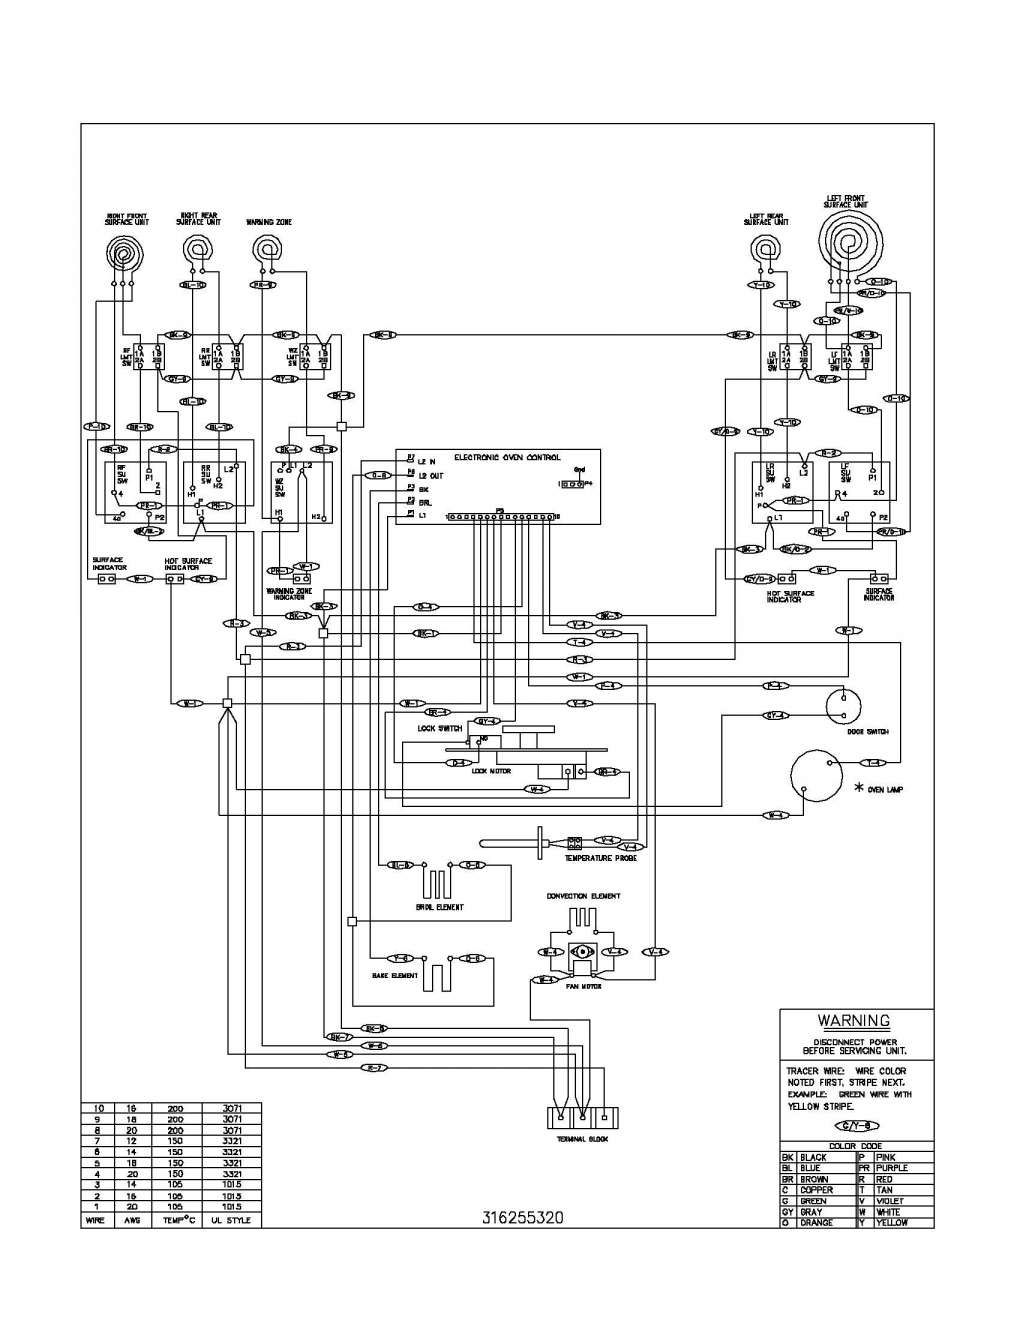 [SCHEMATICS_4JK]  10+ Ge Electric Cooktop Wiring Diagram - Wiring Diagram | Electric stove,  Electric oven, Electric cooktop | Wiring Diagram For Ge Cooktop |  | Pinterest